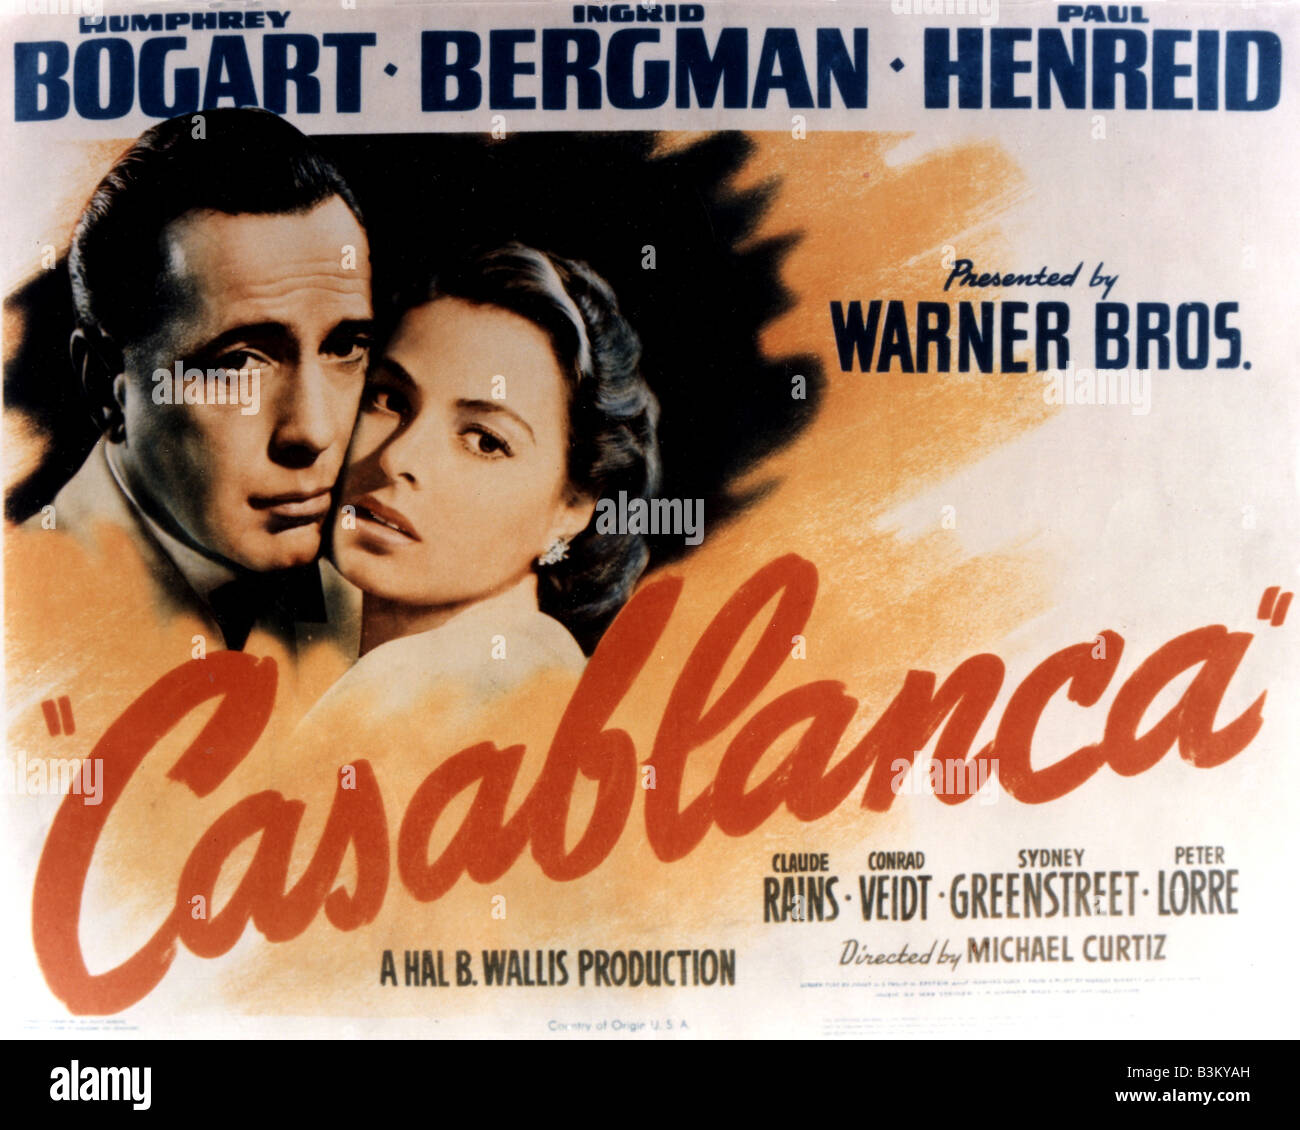 Casablanca poster for 1942 warner film with humphrey bogart and stock photo royalty free image for Poster casablanca